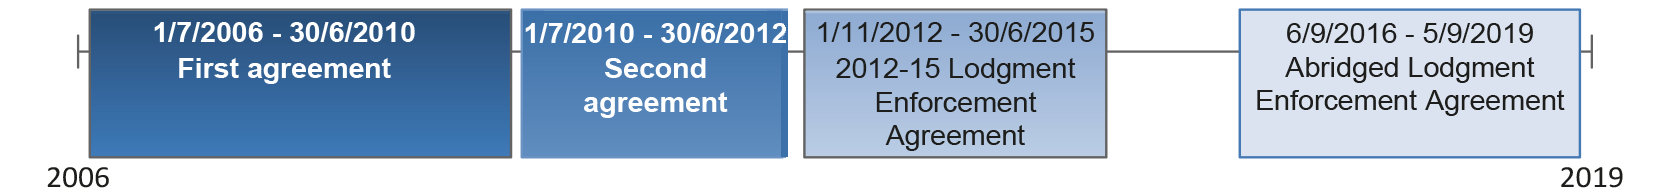 Timeline of Lodgment Enforcement Agreements